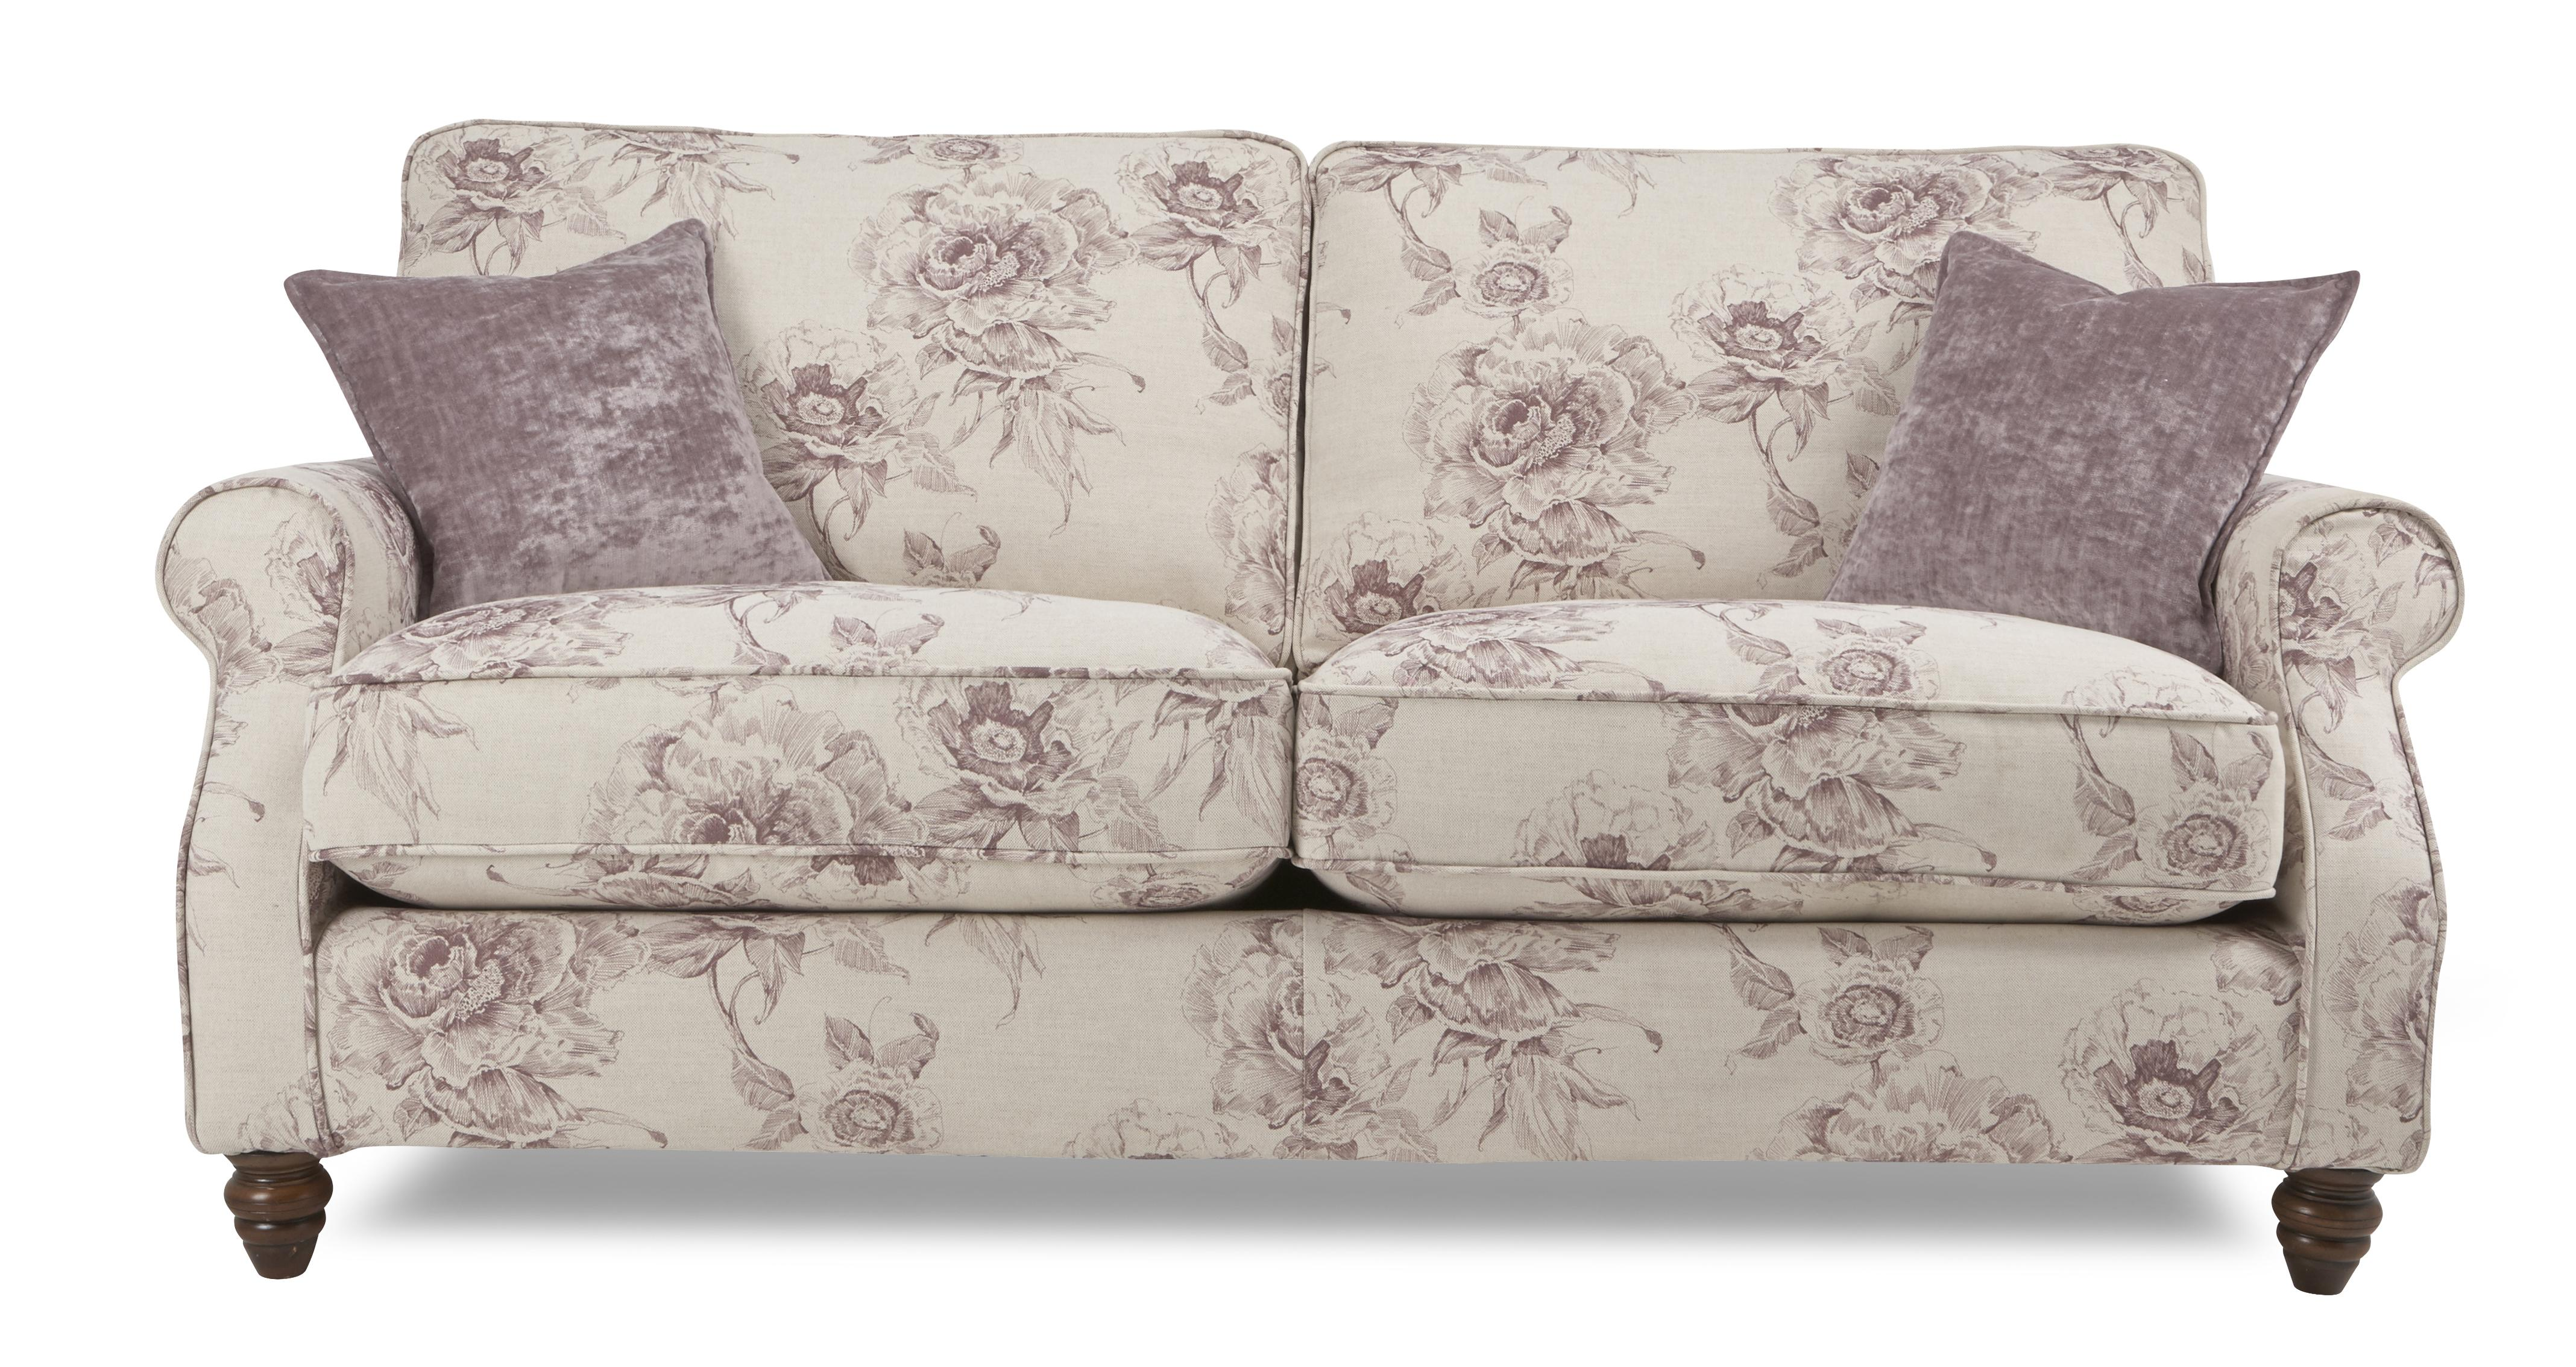 Dfs sofas ireland chaise longue and foot stool dfs shout for Chaise longue for sale ireland